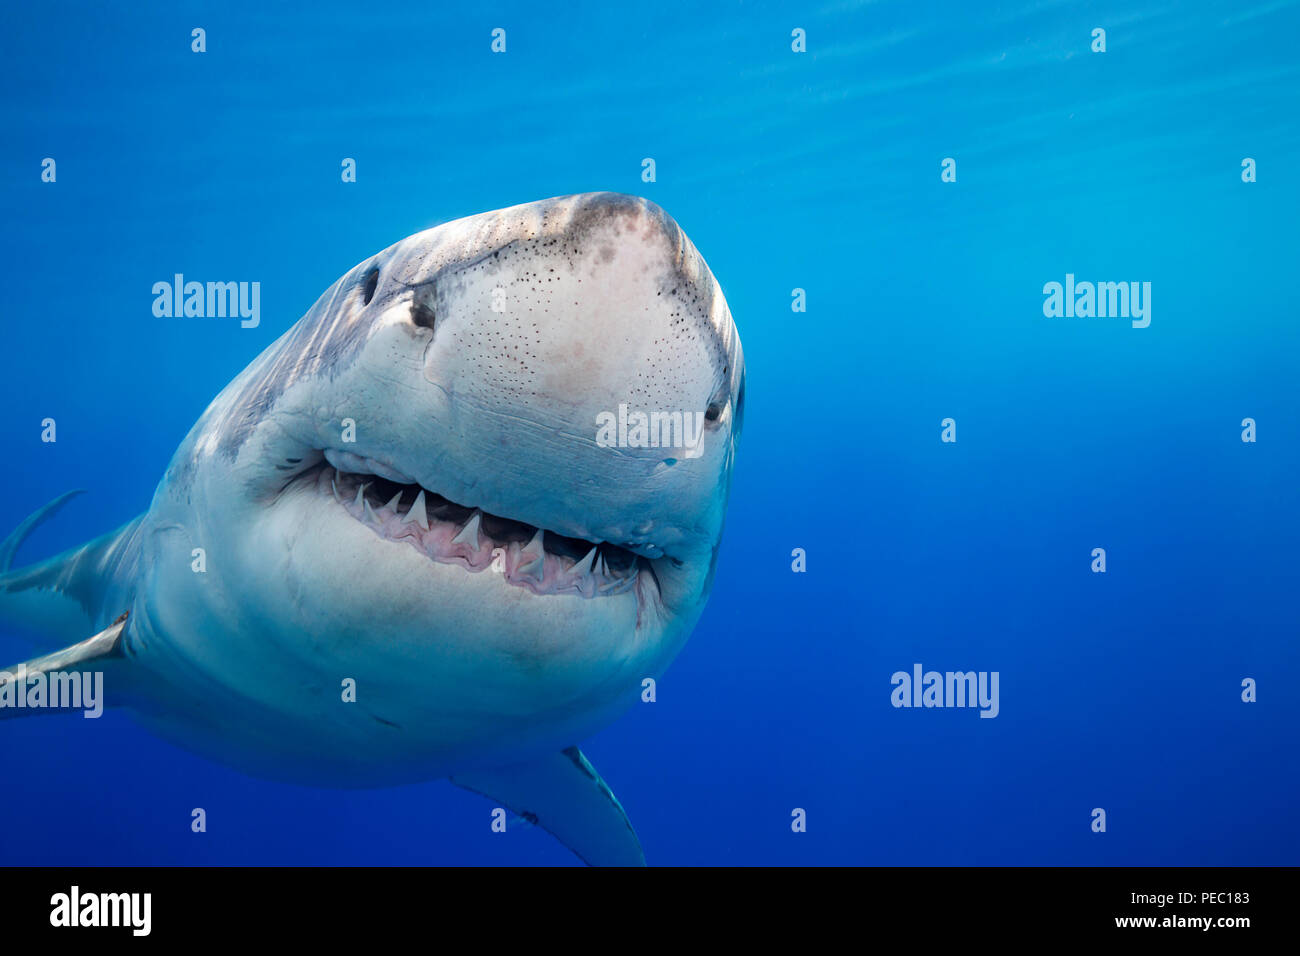 This great white shark, Carcharodon carcharias, was photographed off Guadalupe Island, Mexico. - Stock Image